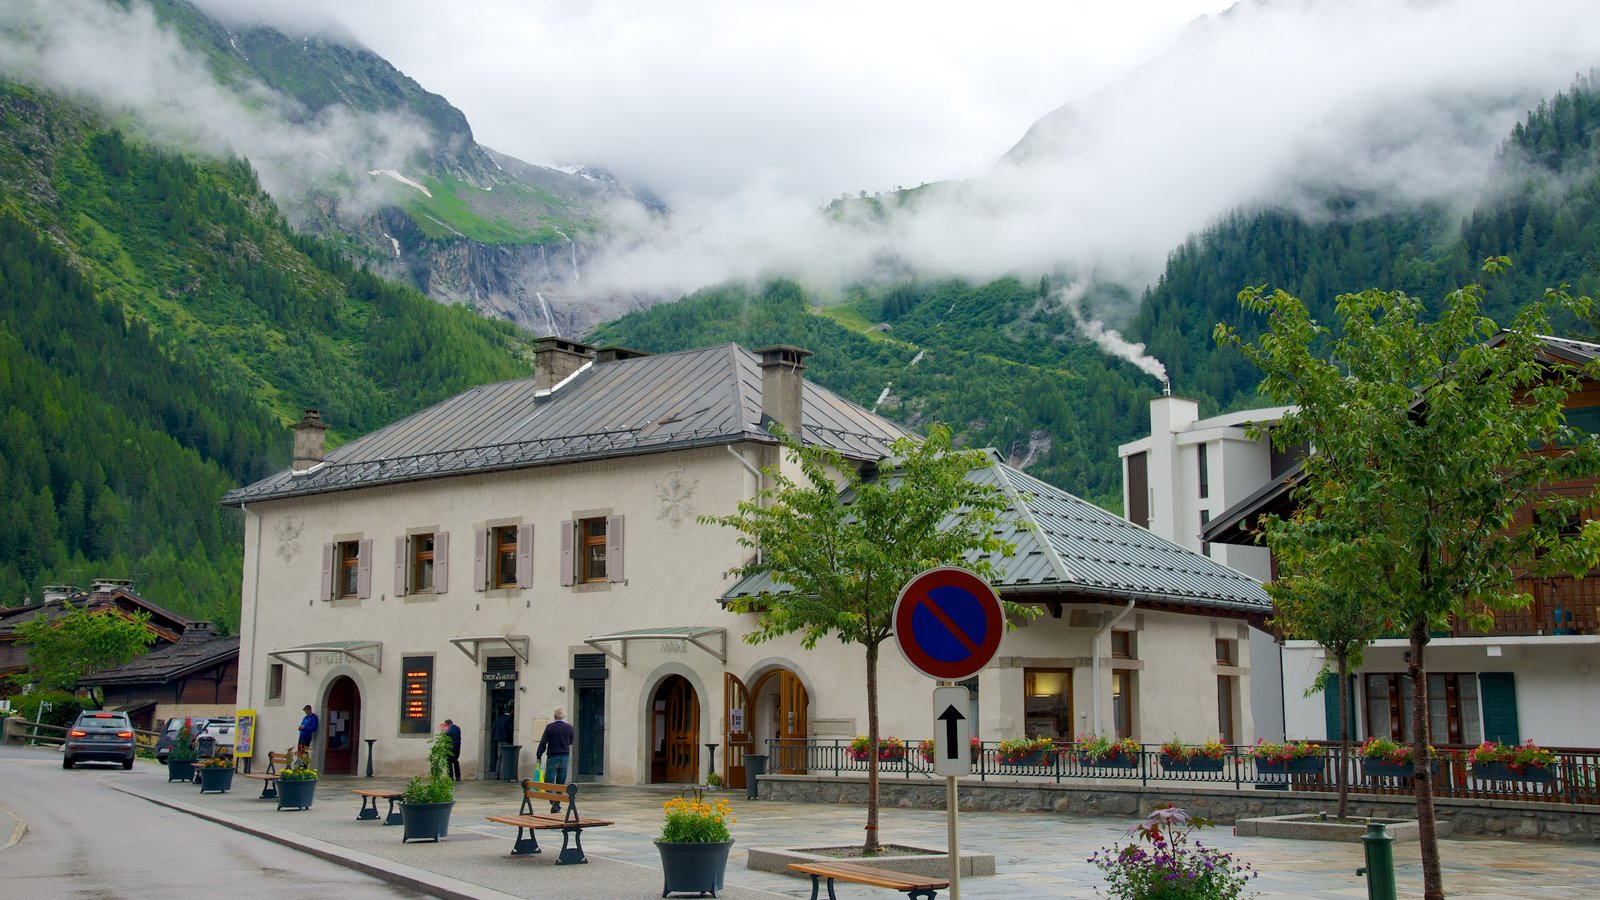 Argentiere showing mountains, heritage elements and a small town or village